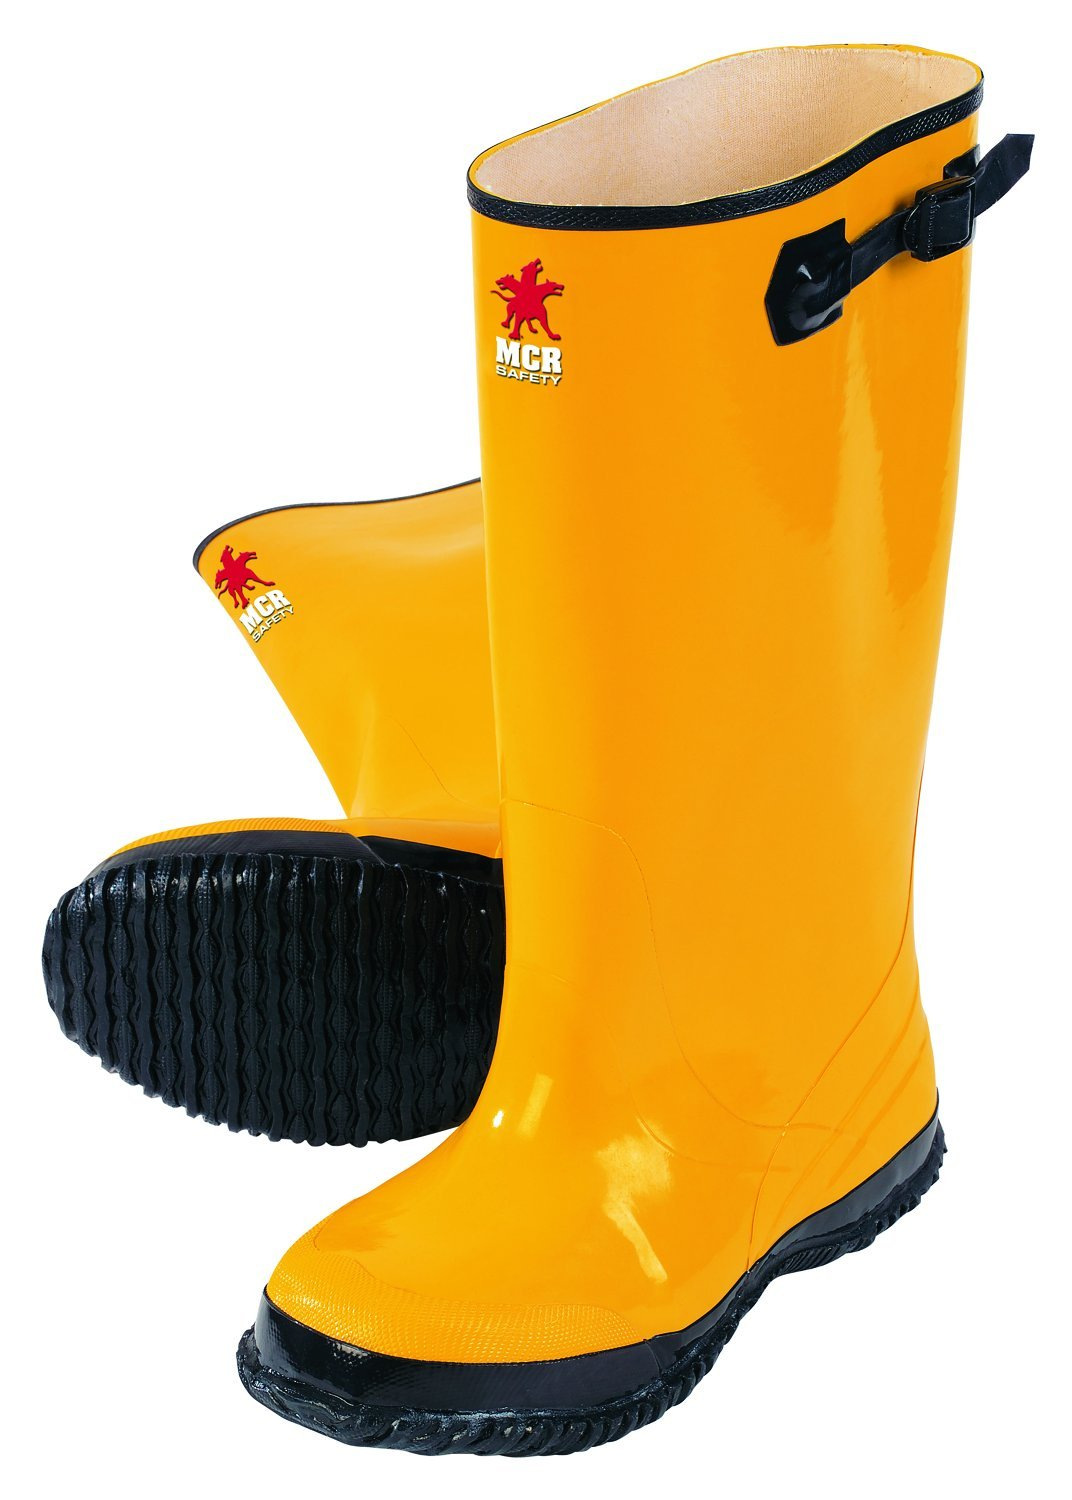 MCR Safety BYR10011 Waterproof Rubber Slush Boot with Cleated Outsole, Yellow, Size 11, 1-Pair